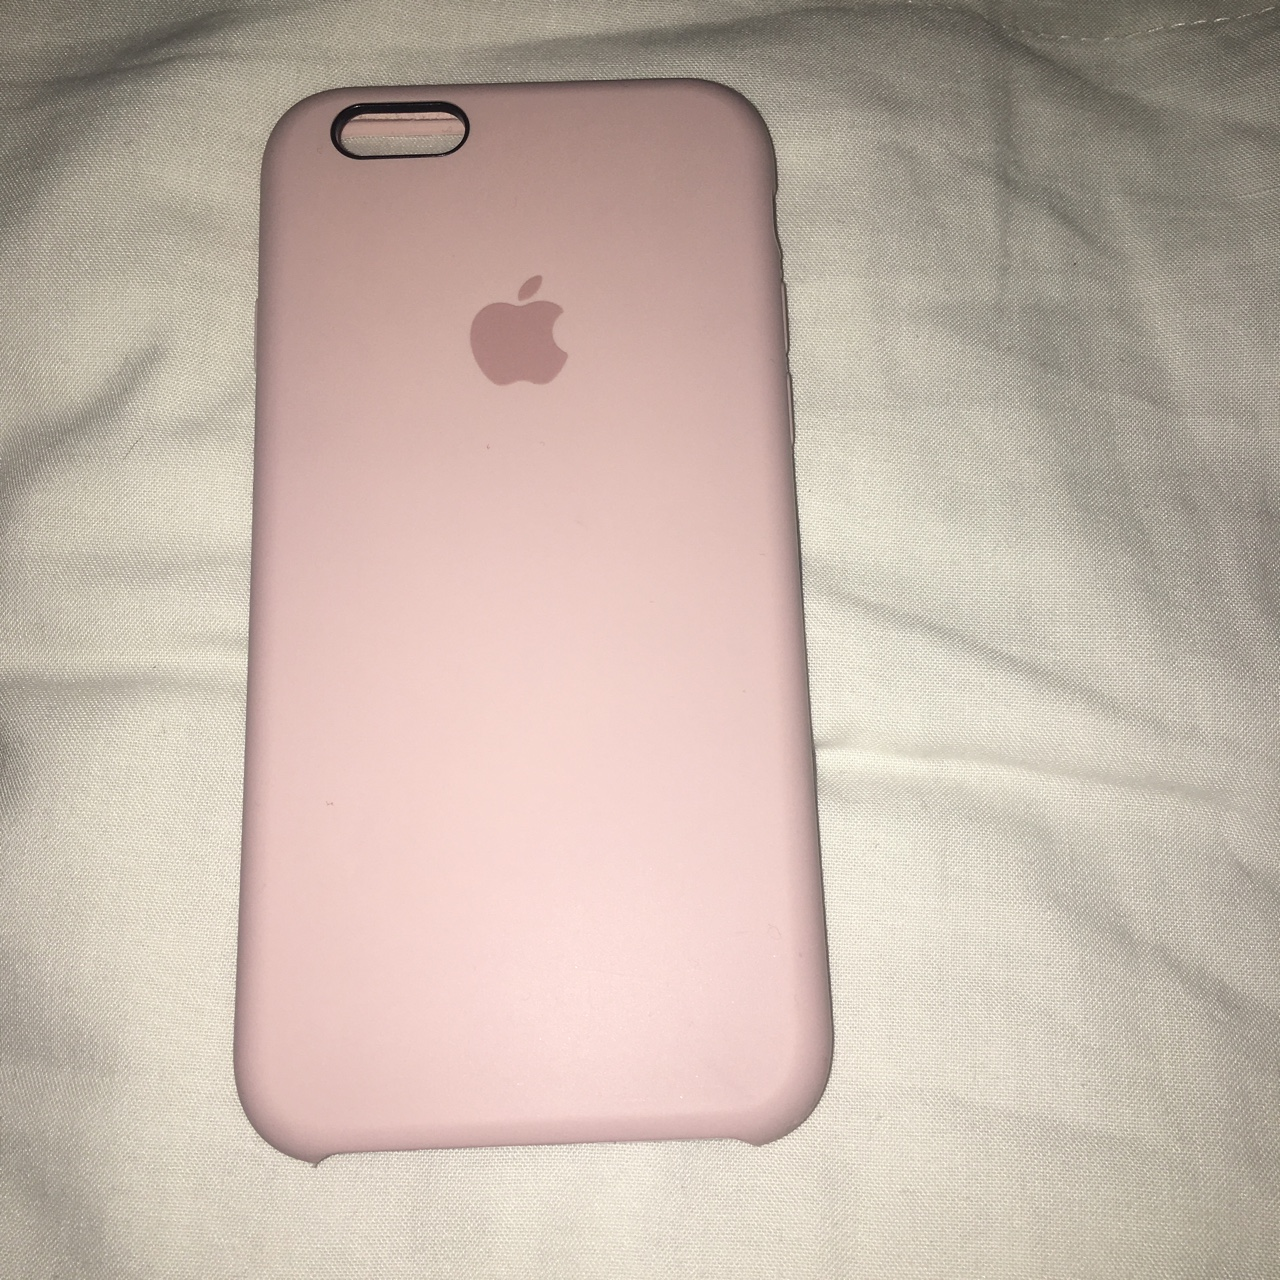 buy online b60bc 5fb4a Apple iphone 6/6s silicone case in pink sand - Depop